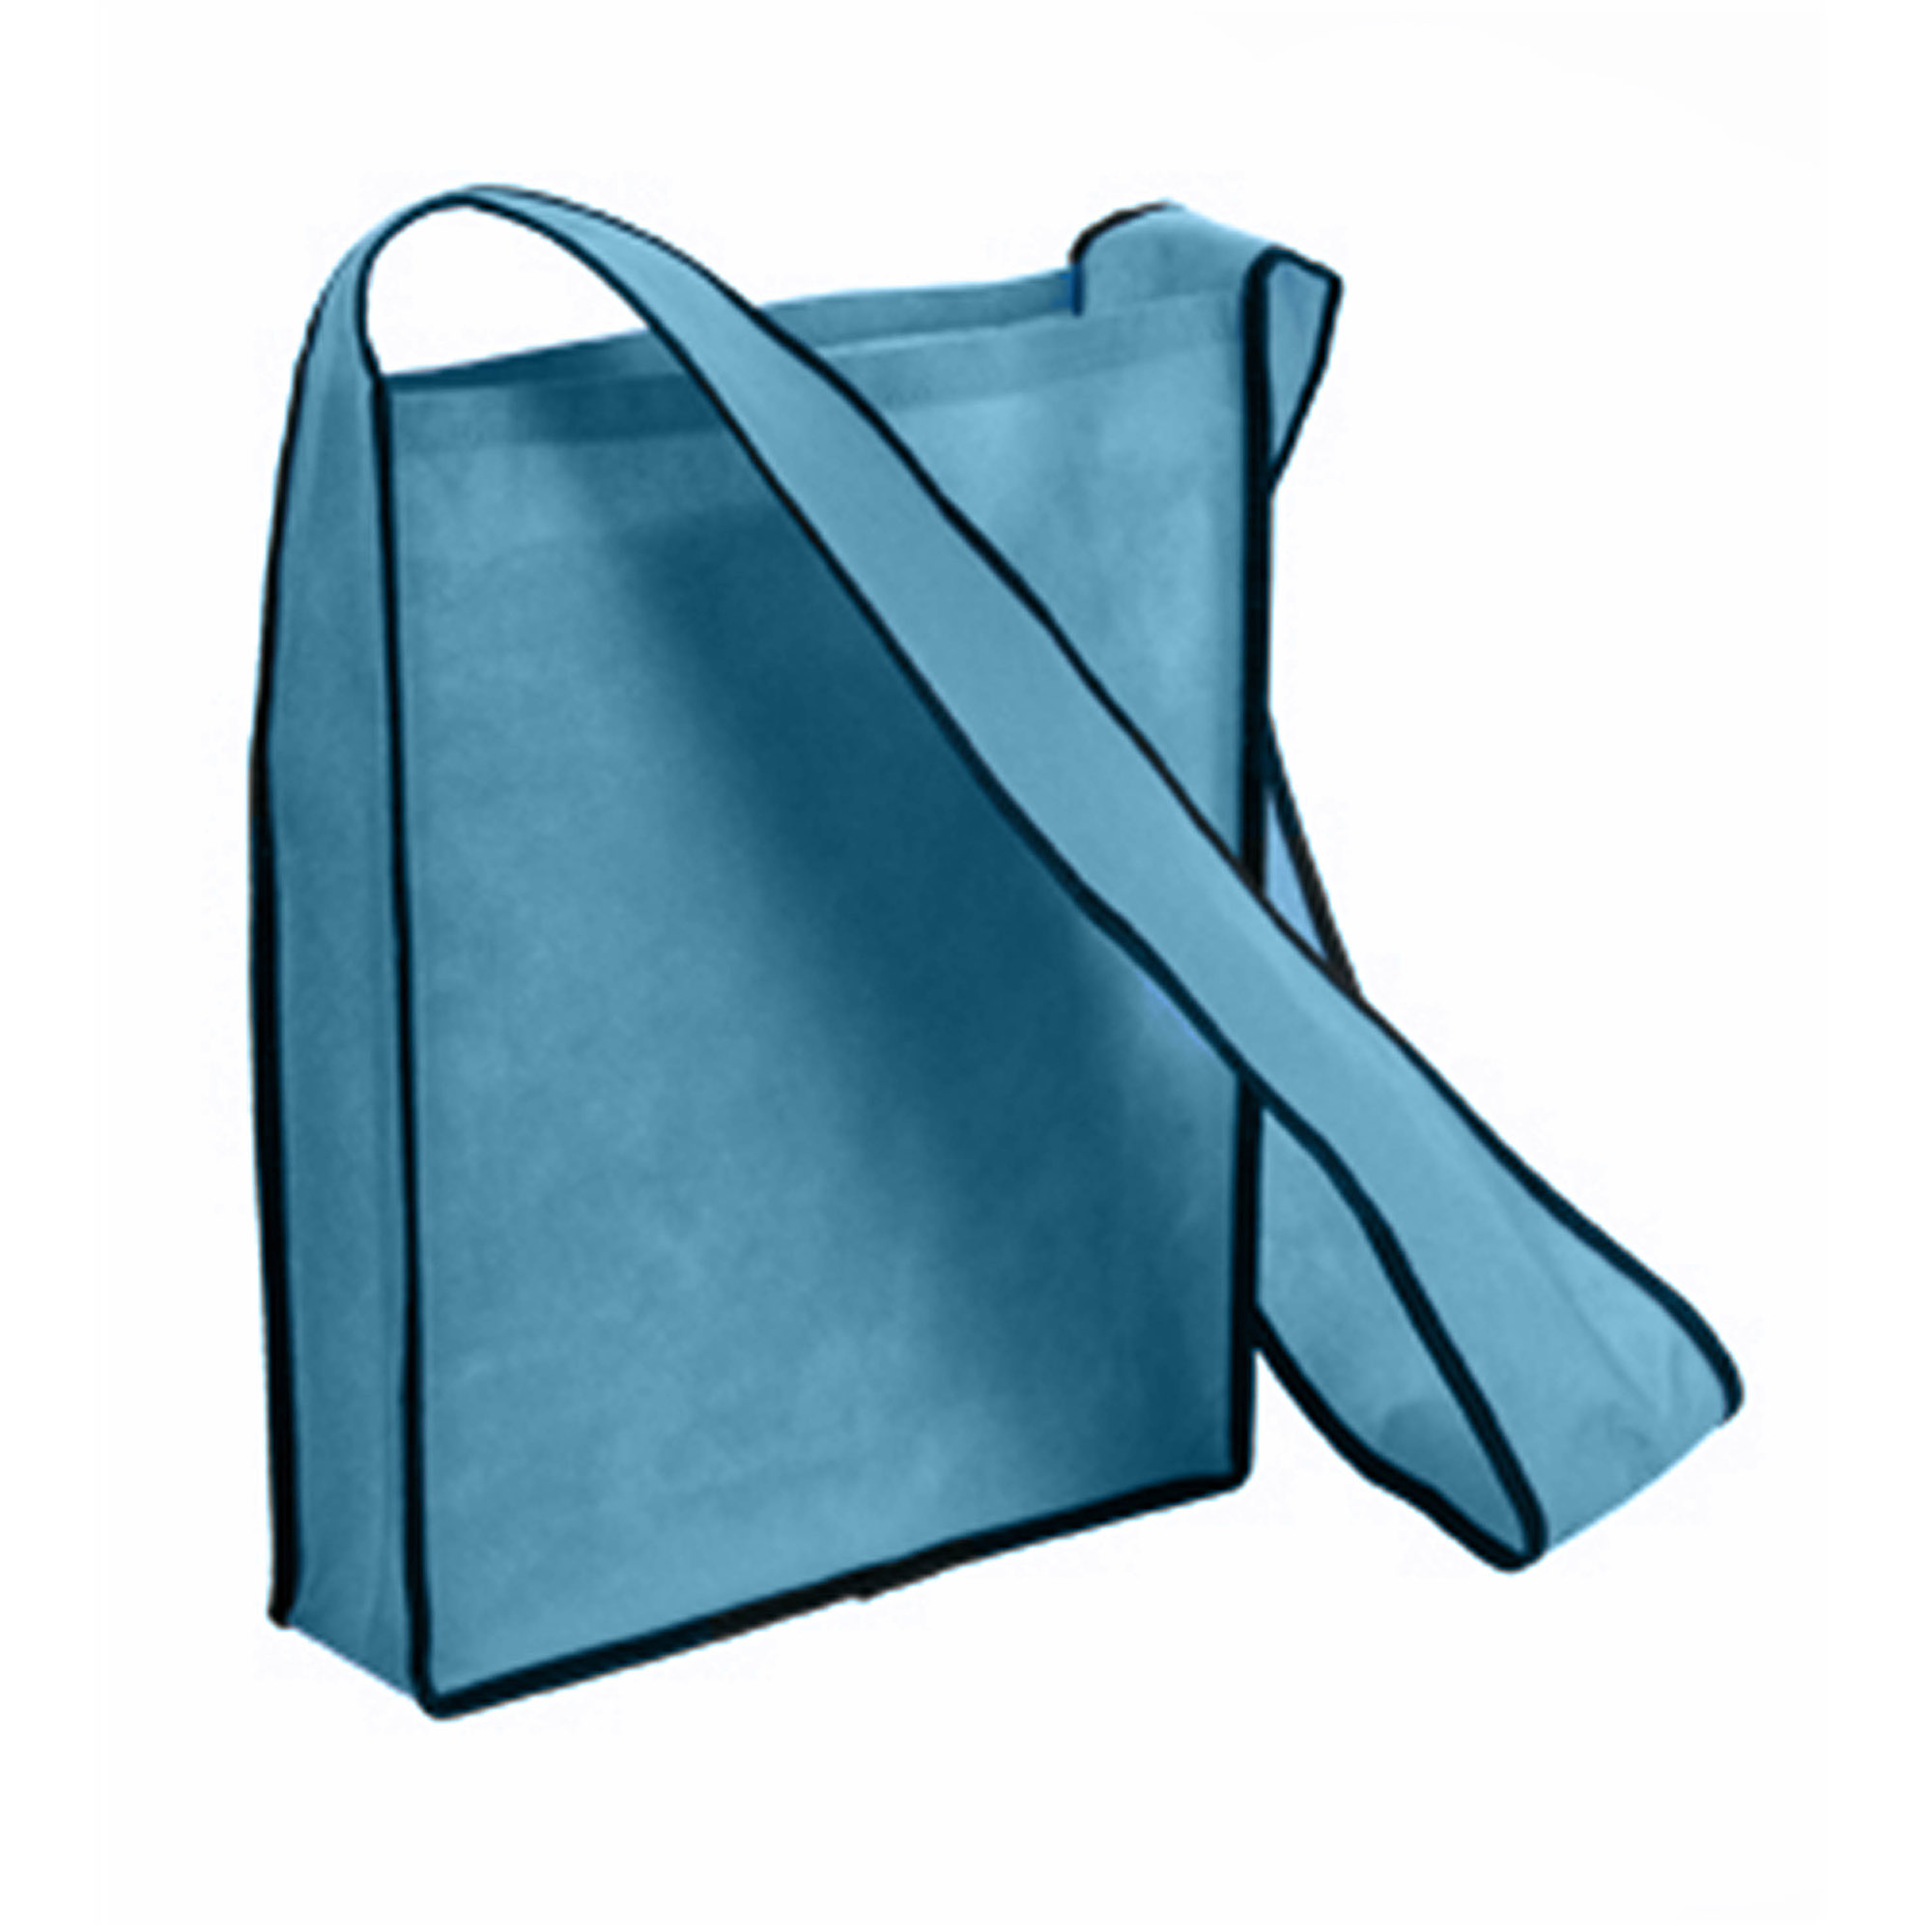 NON WOVEN SLING BAG - 1 Colour Print, From $1.04